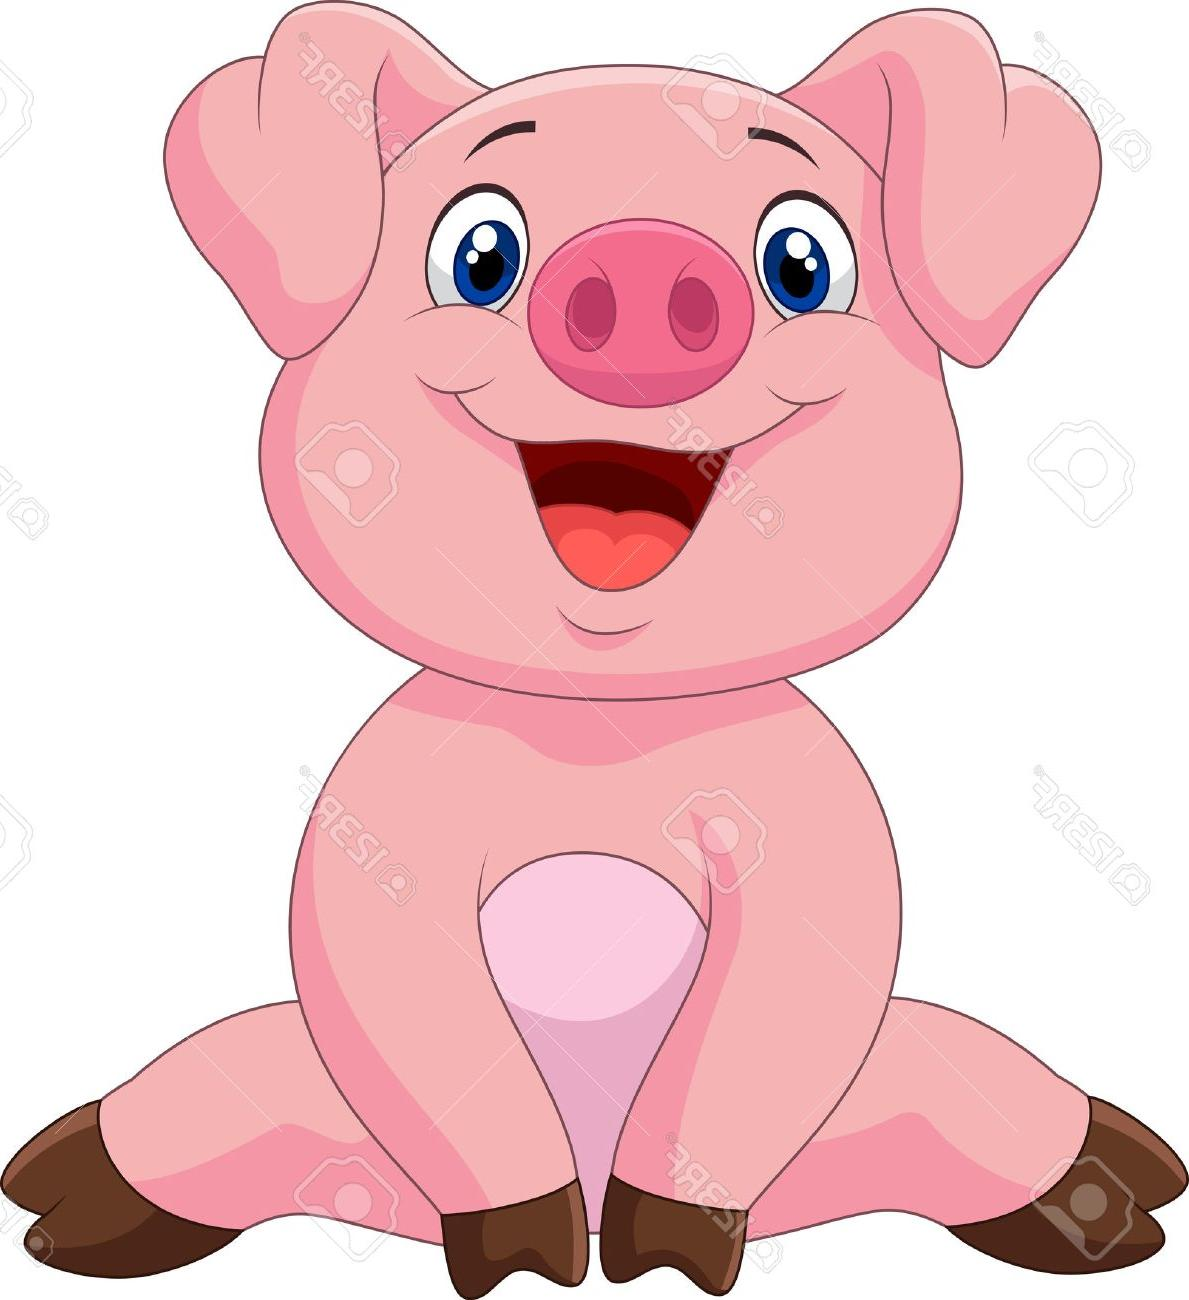 Clipart pig animated, Clipart pig animated Transparent FREE for download on  WebStockReview 2020